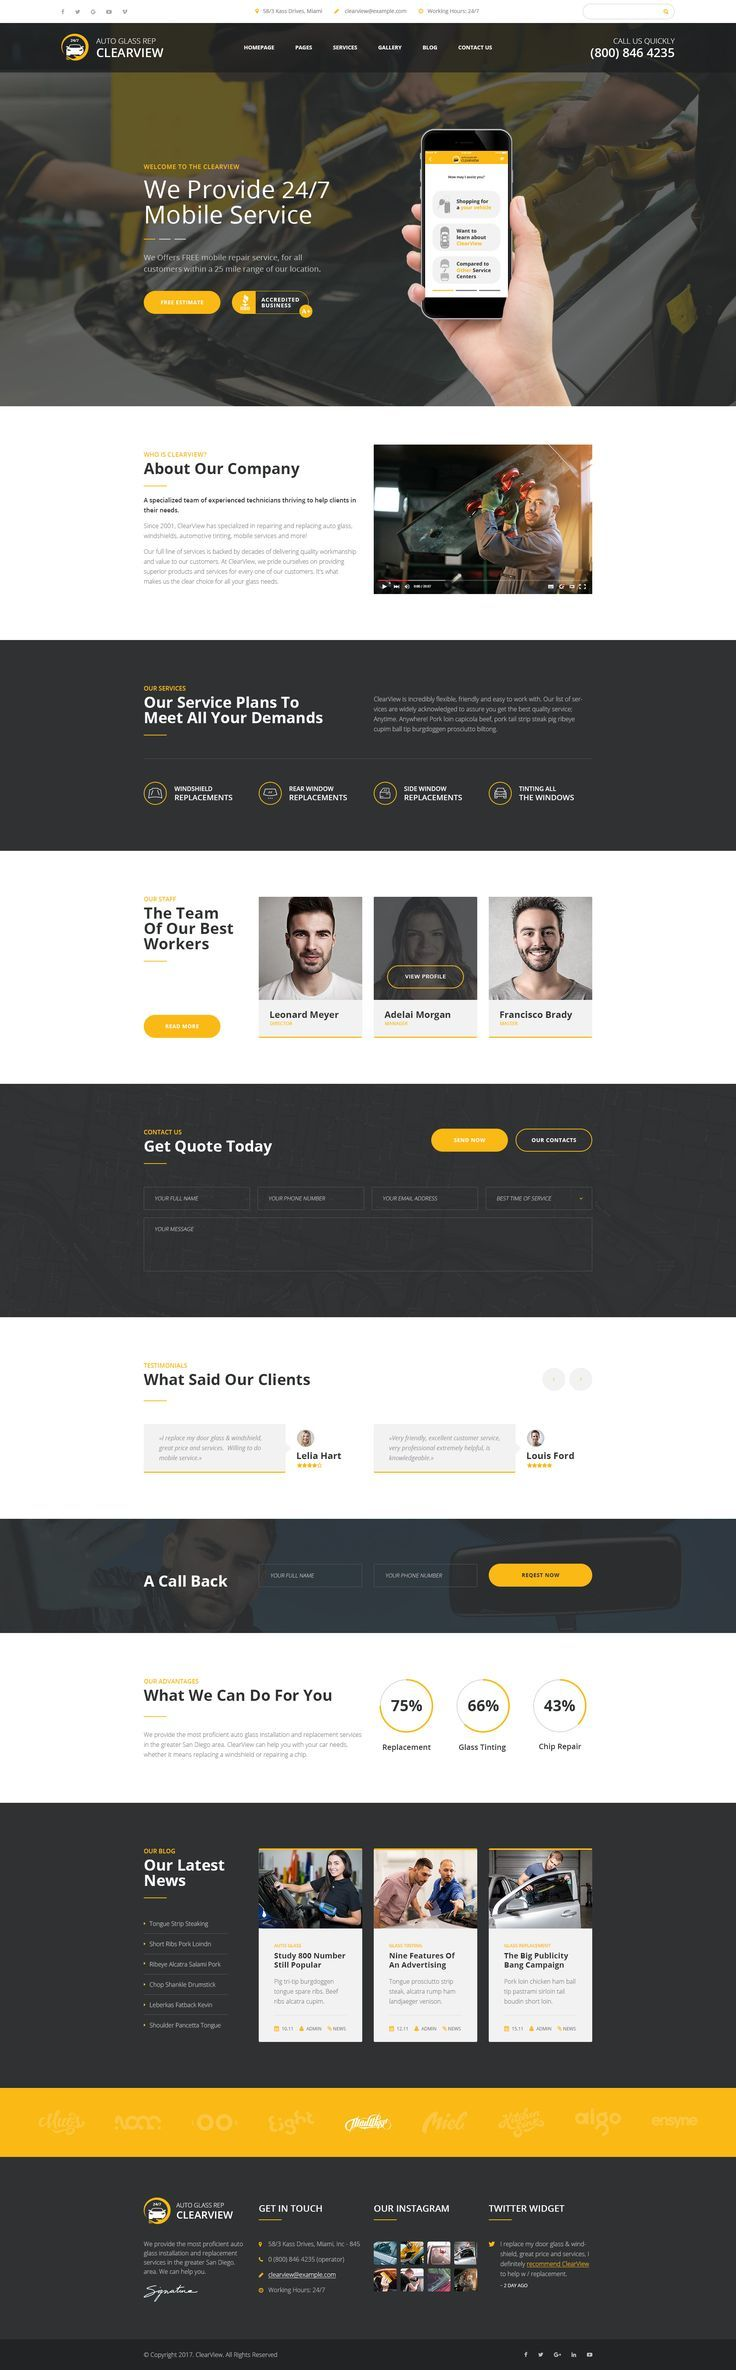 ClearView - Auto Glass Repair, Replacement and Window Tinting PSD Template #auto glass replacement #auto tint #auto window tinting • Download ➝ https://themeforest.net/item/clearview-auto-glass-repair-replacement-and-window-tinting-psd-template/20990885?ref=rabosch